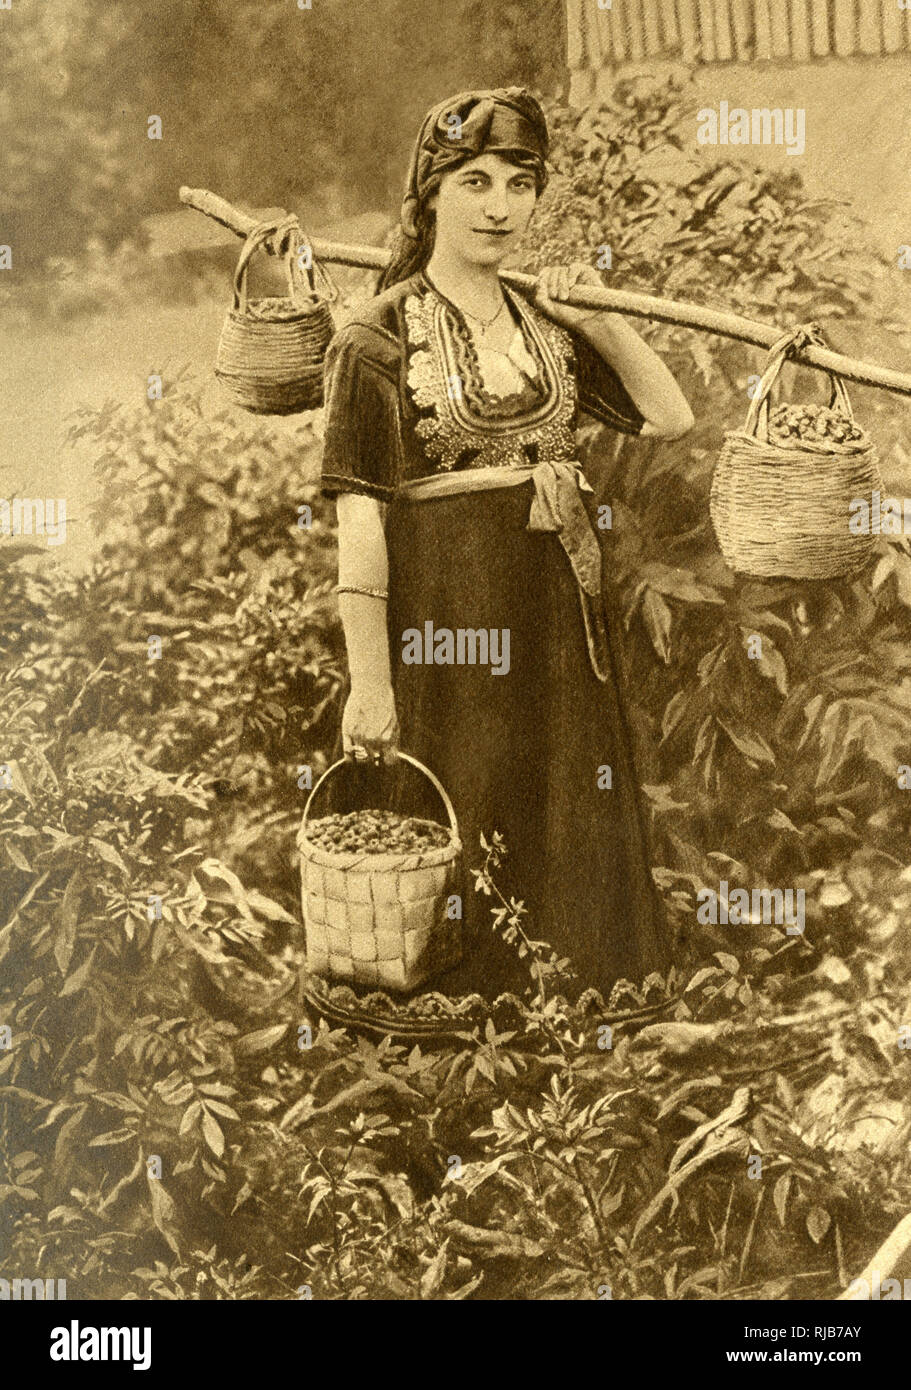 Young peasant woman in traditional dress with embroidered bodice, Bulgaria. She is carrying baskets of wild berries. Stock Photo